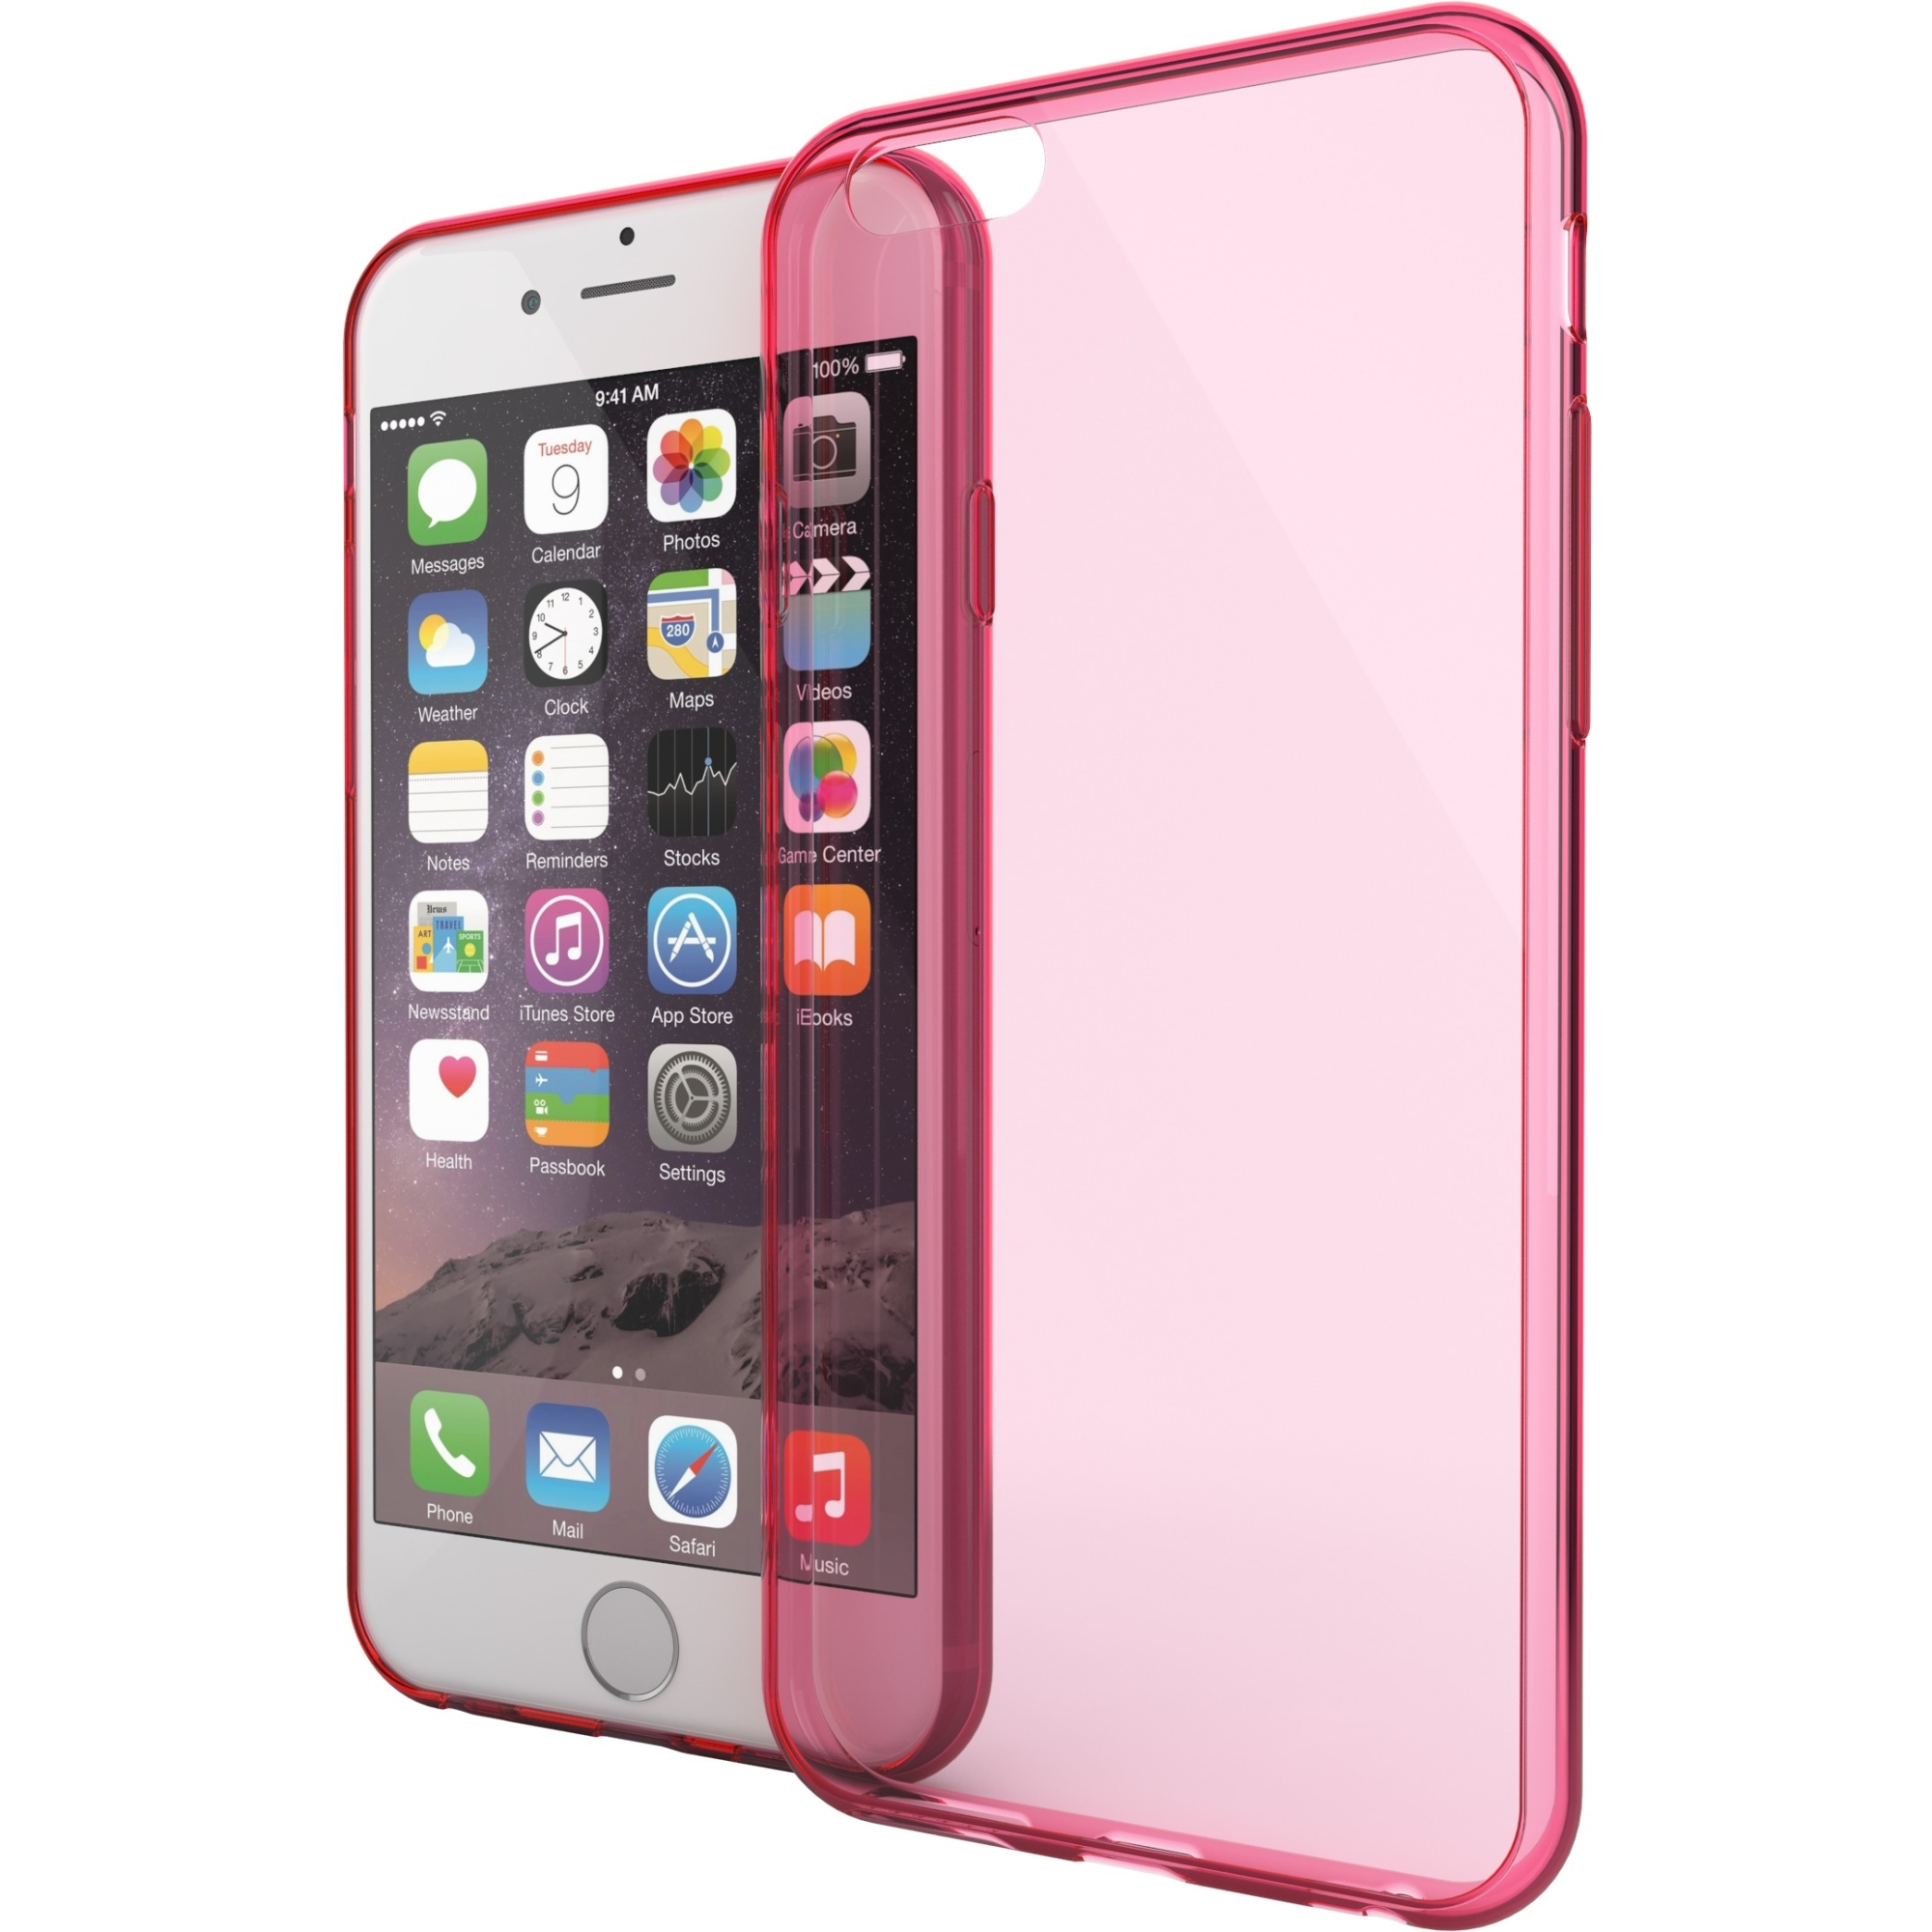 Mota iPhone 6 Plus Protection Case - Pink MT-I6PC5P